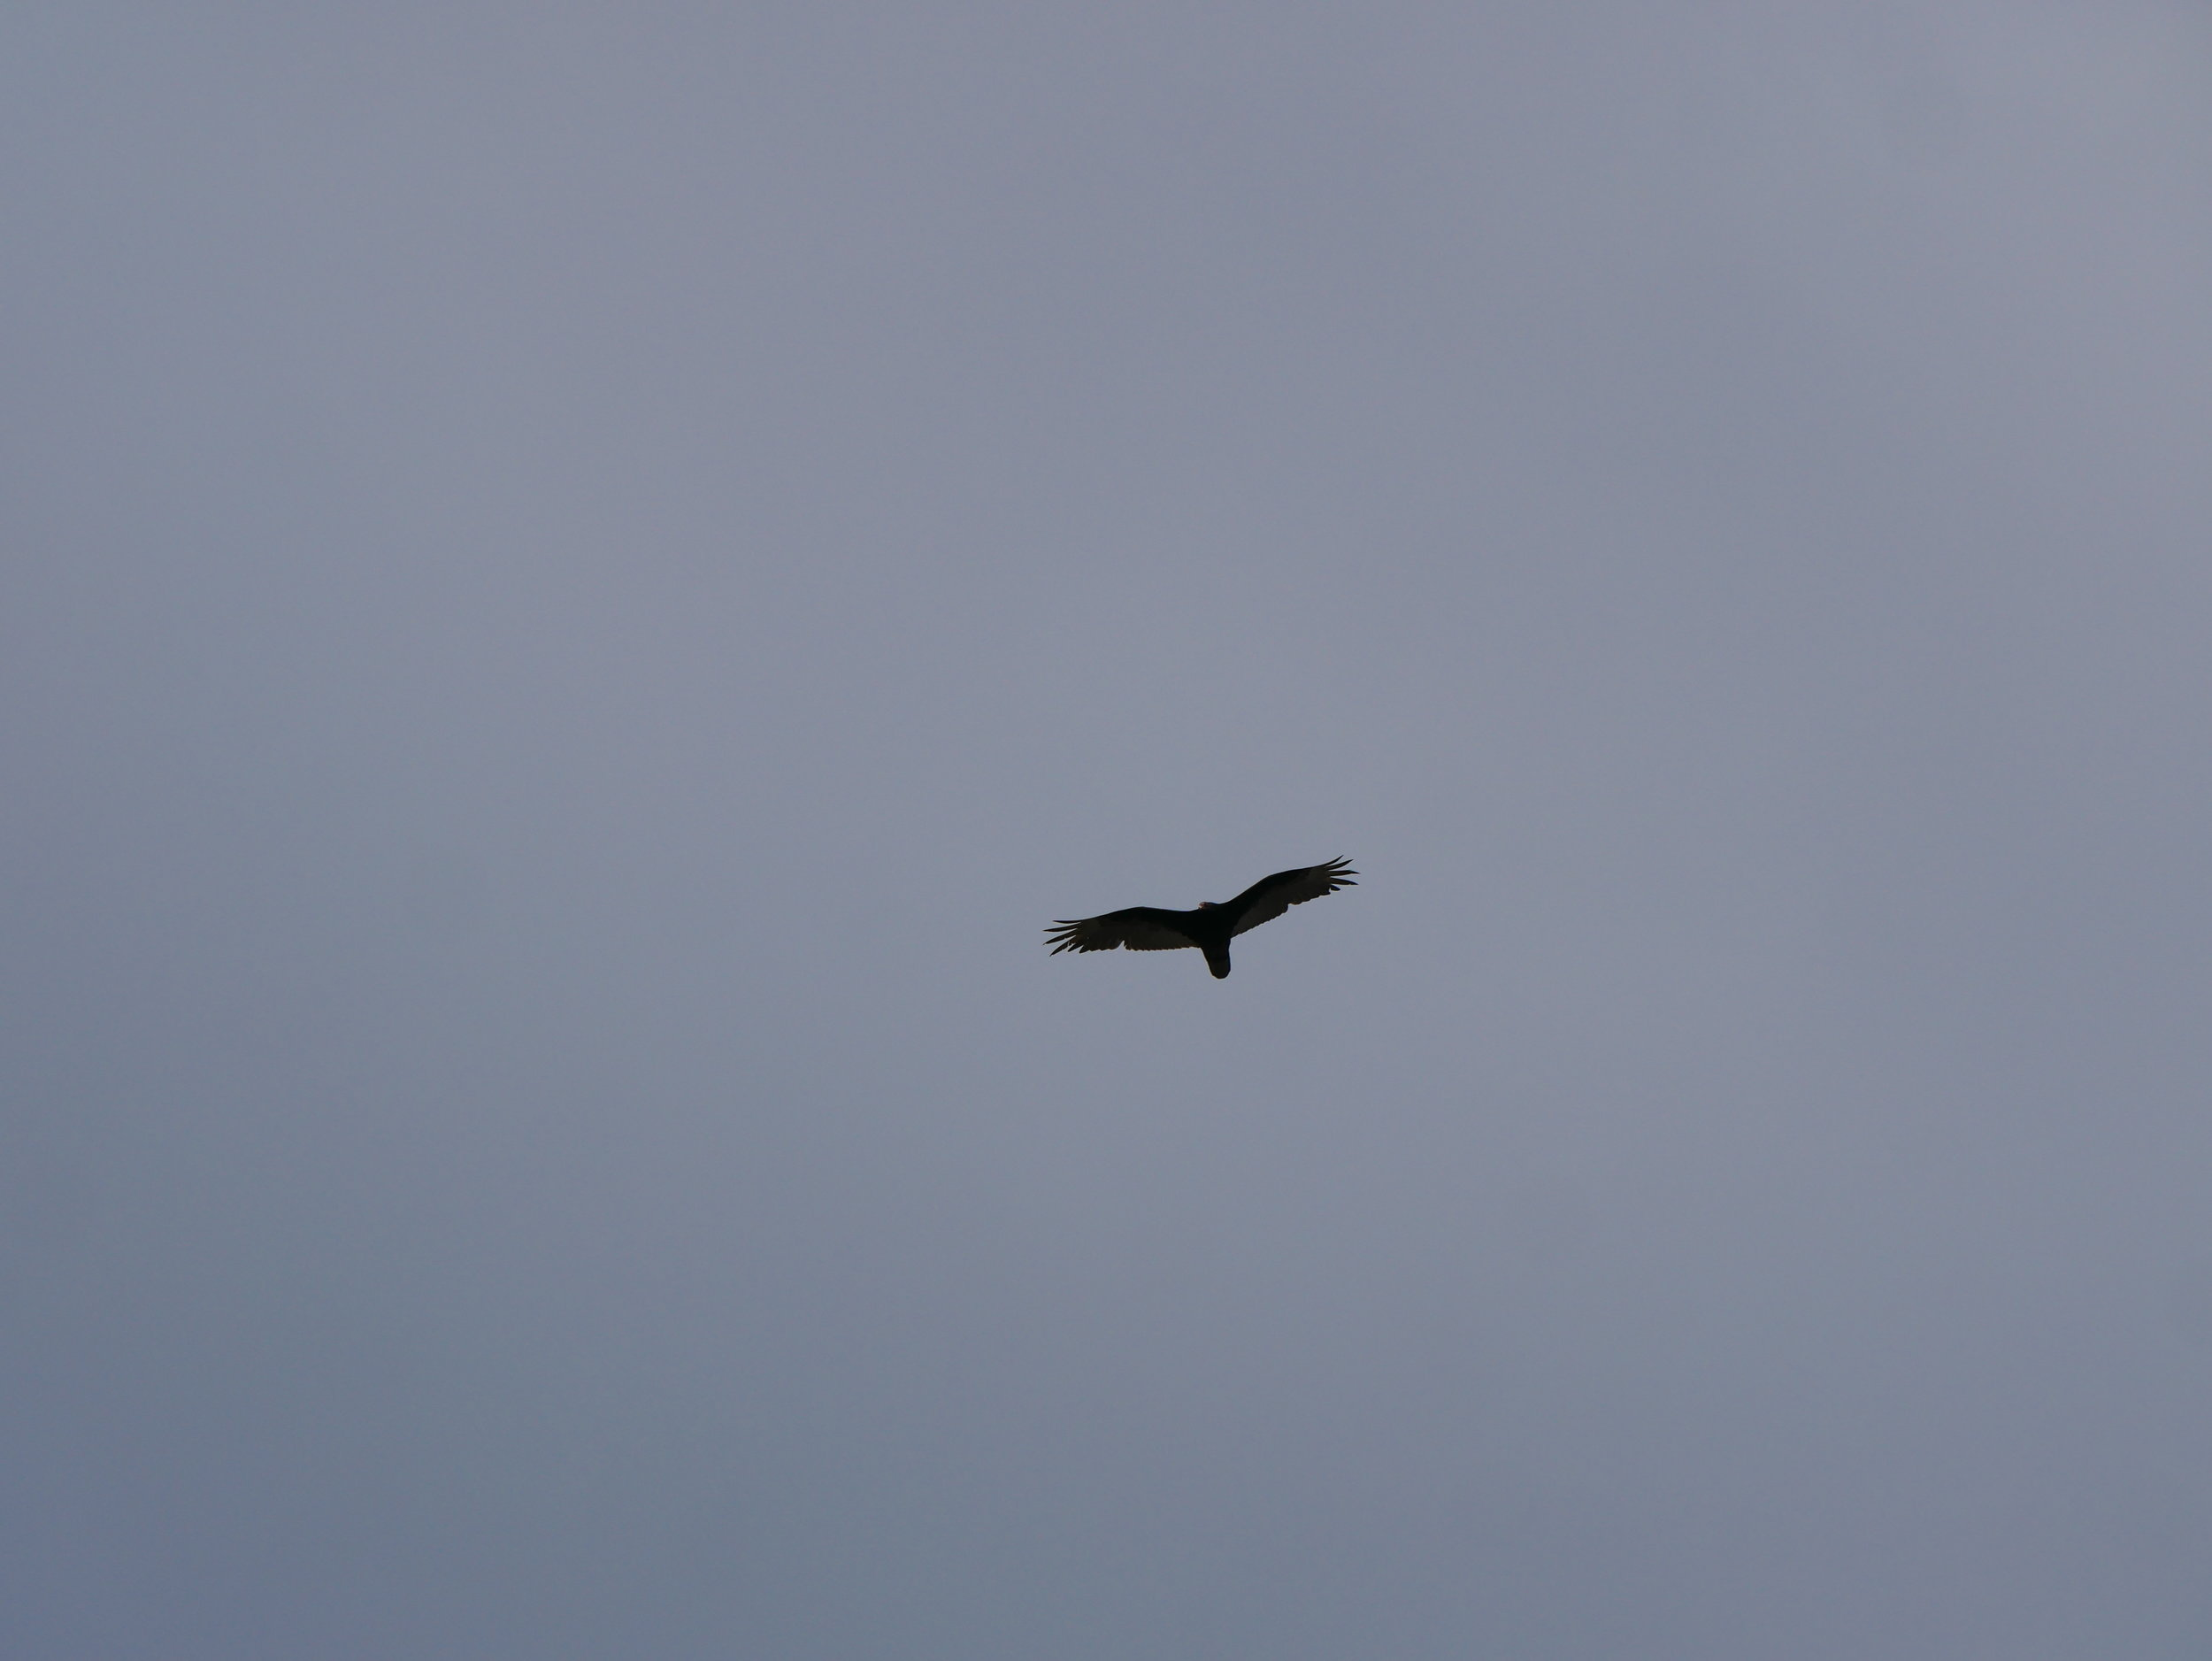 Turkey vulture riding the thermals.